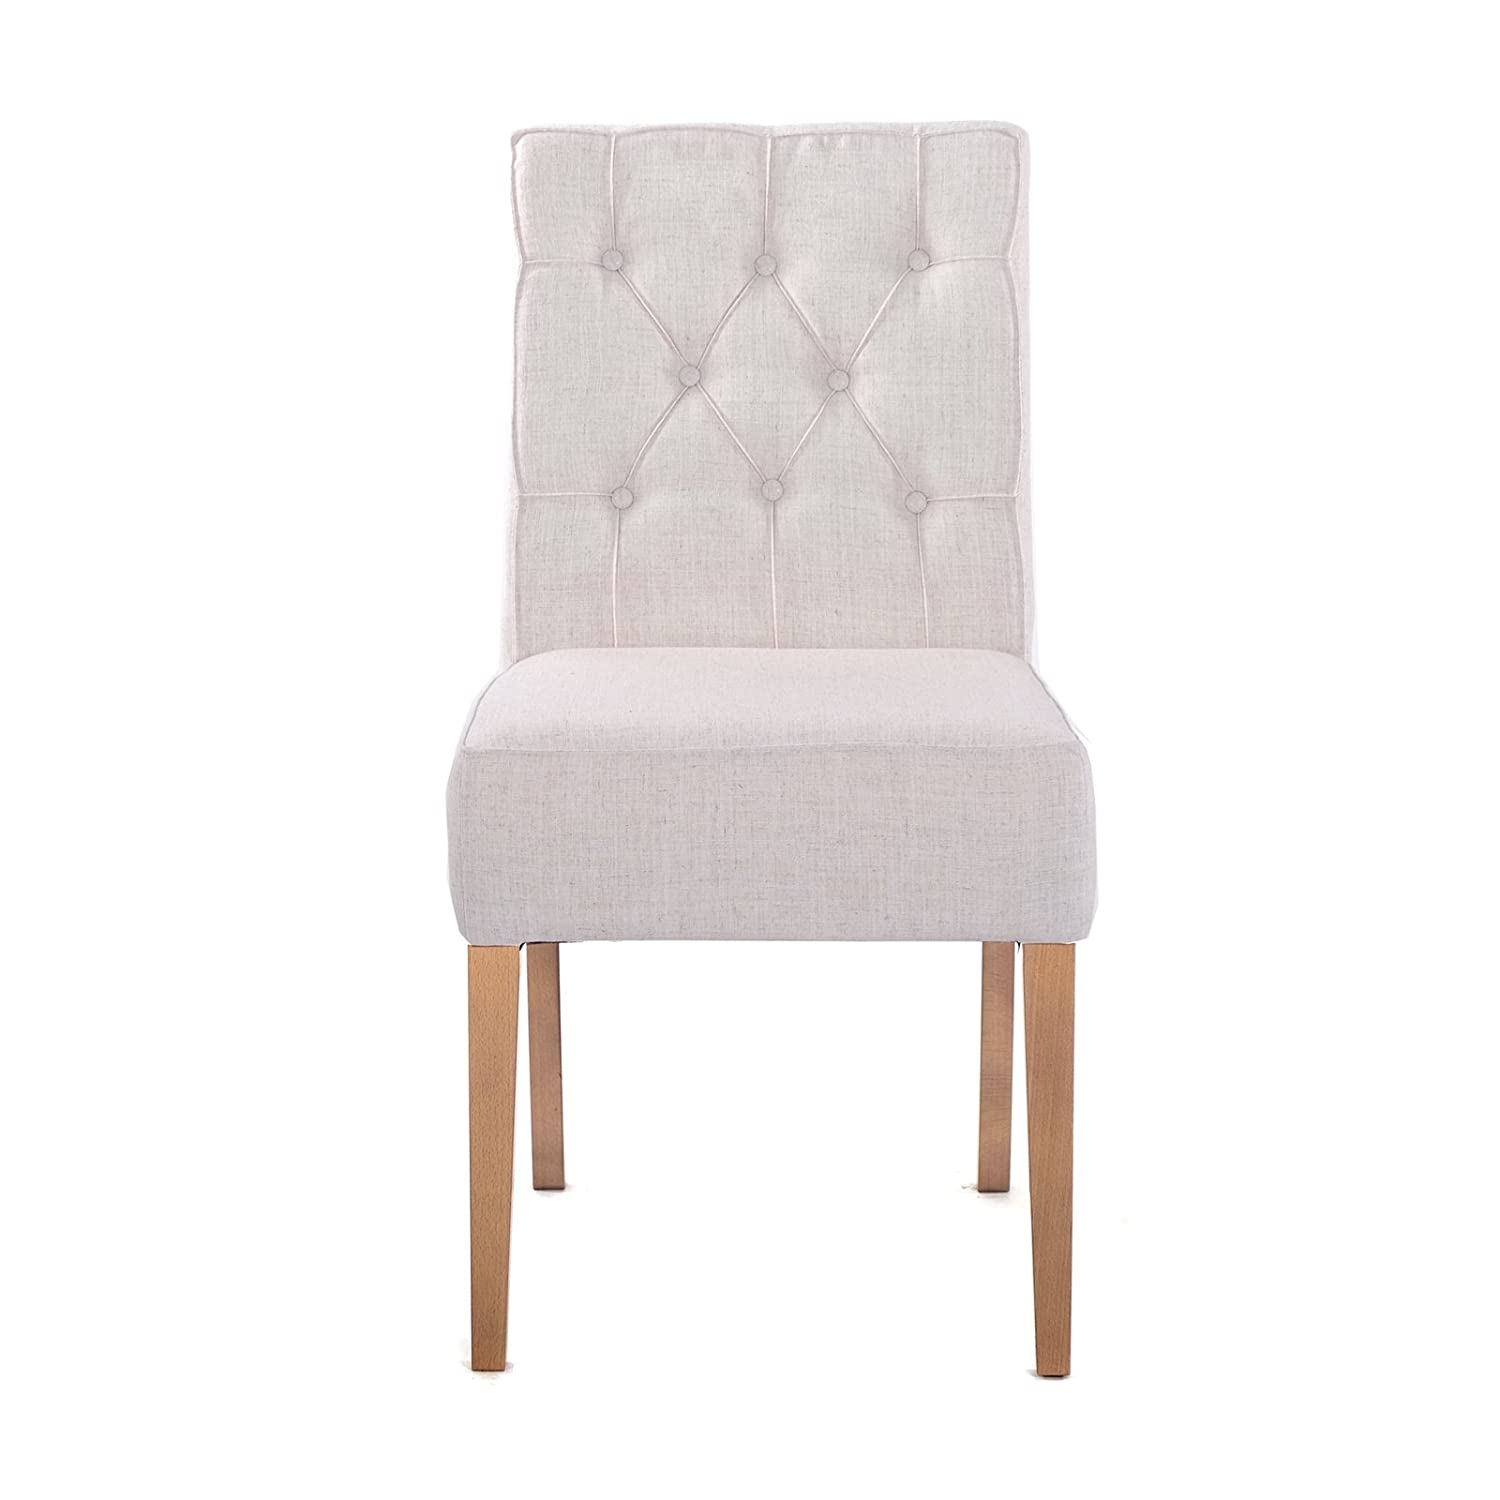 Design Kitchen Chair Step Up Upholstered Fabric Cover Natural